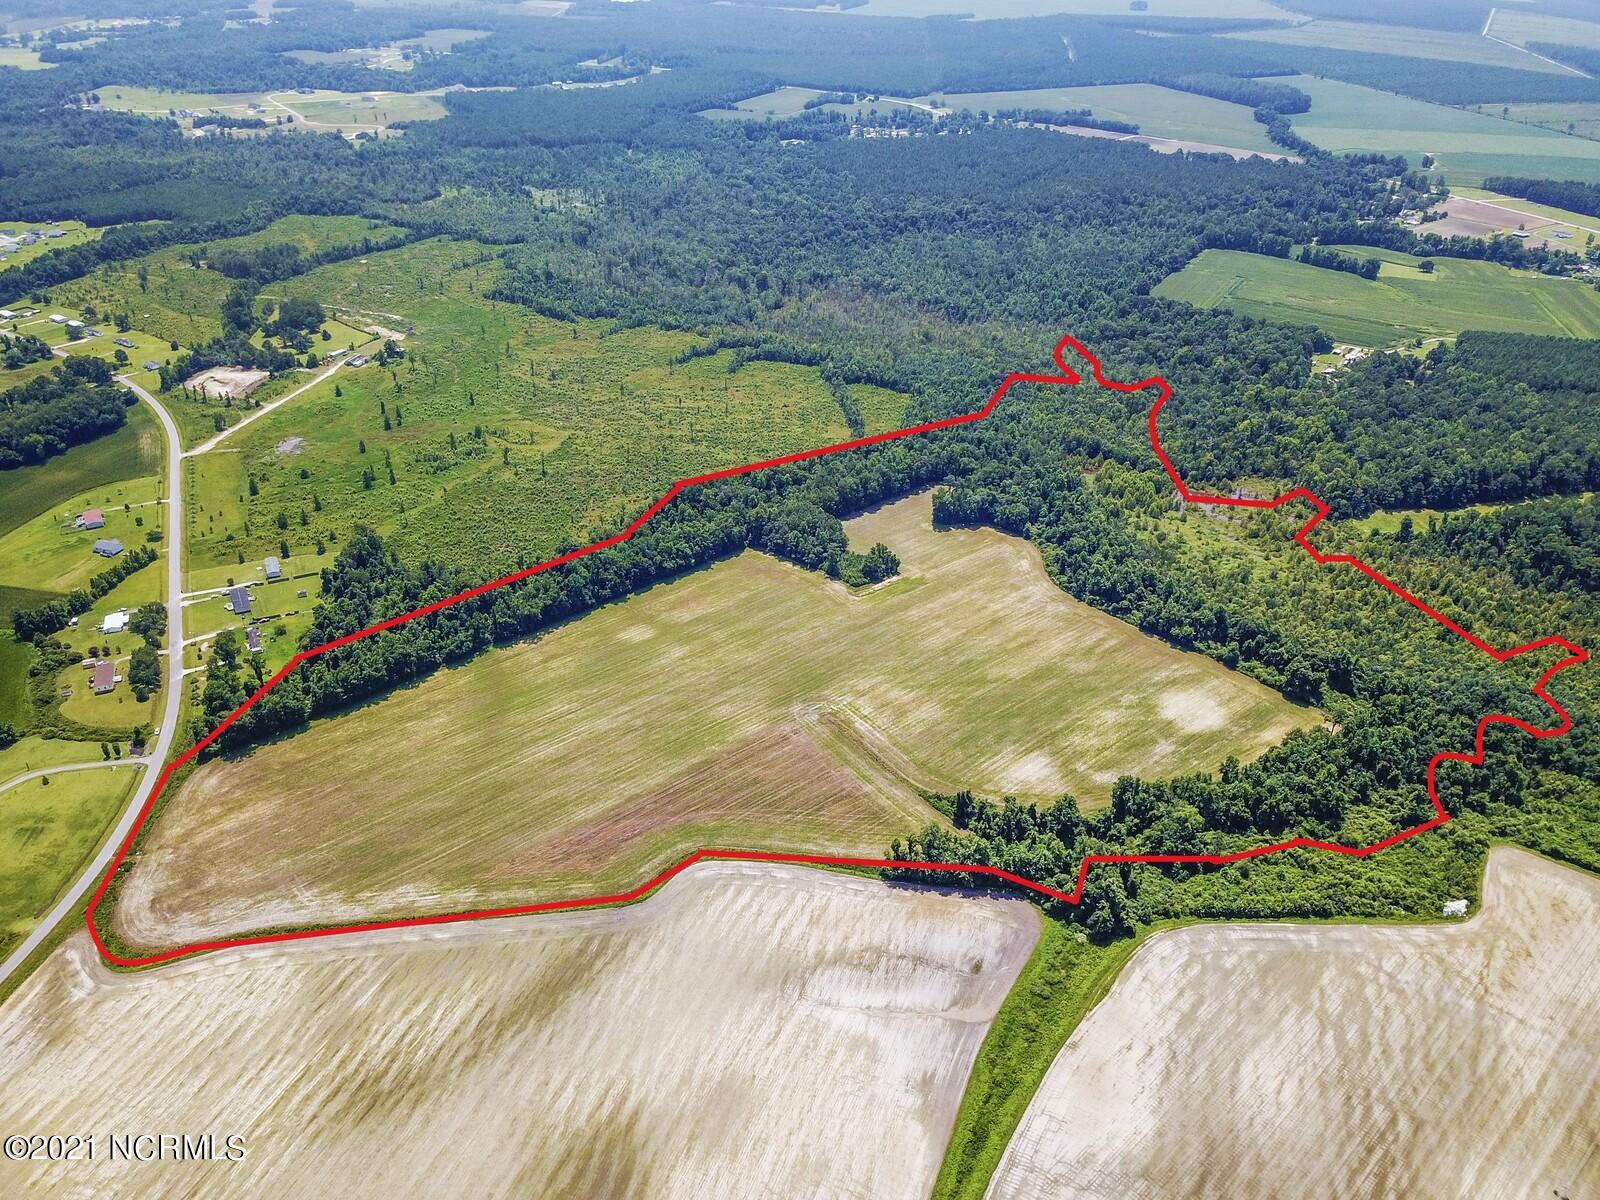 Approximately 63 acres of undeveloped land, currently used partially for agricultural lease, with about 32 acres of wooded buffer around the back and left side of the parcel. This land has historically produced soybeans, tobacco, corn, and currently has beans planted for the 2021 late season. Tax advantages are available if you want to continue agricultural uses, ask for details. Soils on this parcel include Goldsboro, Norfolk, and some Mucklee, as expected in the wooded area. The wooded area on the back of this property does have flood zone on it, but the field does not. A culvert from Hadley Collins, a state maintained road, provides access for farm equipment, or your future home.